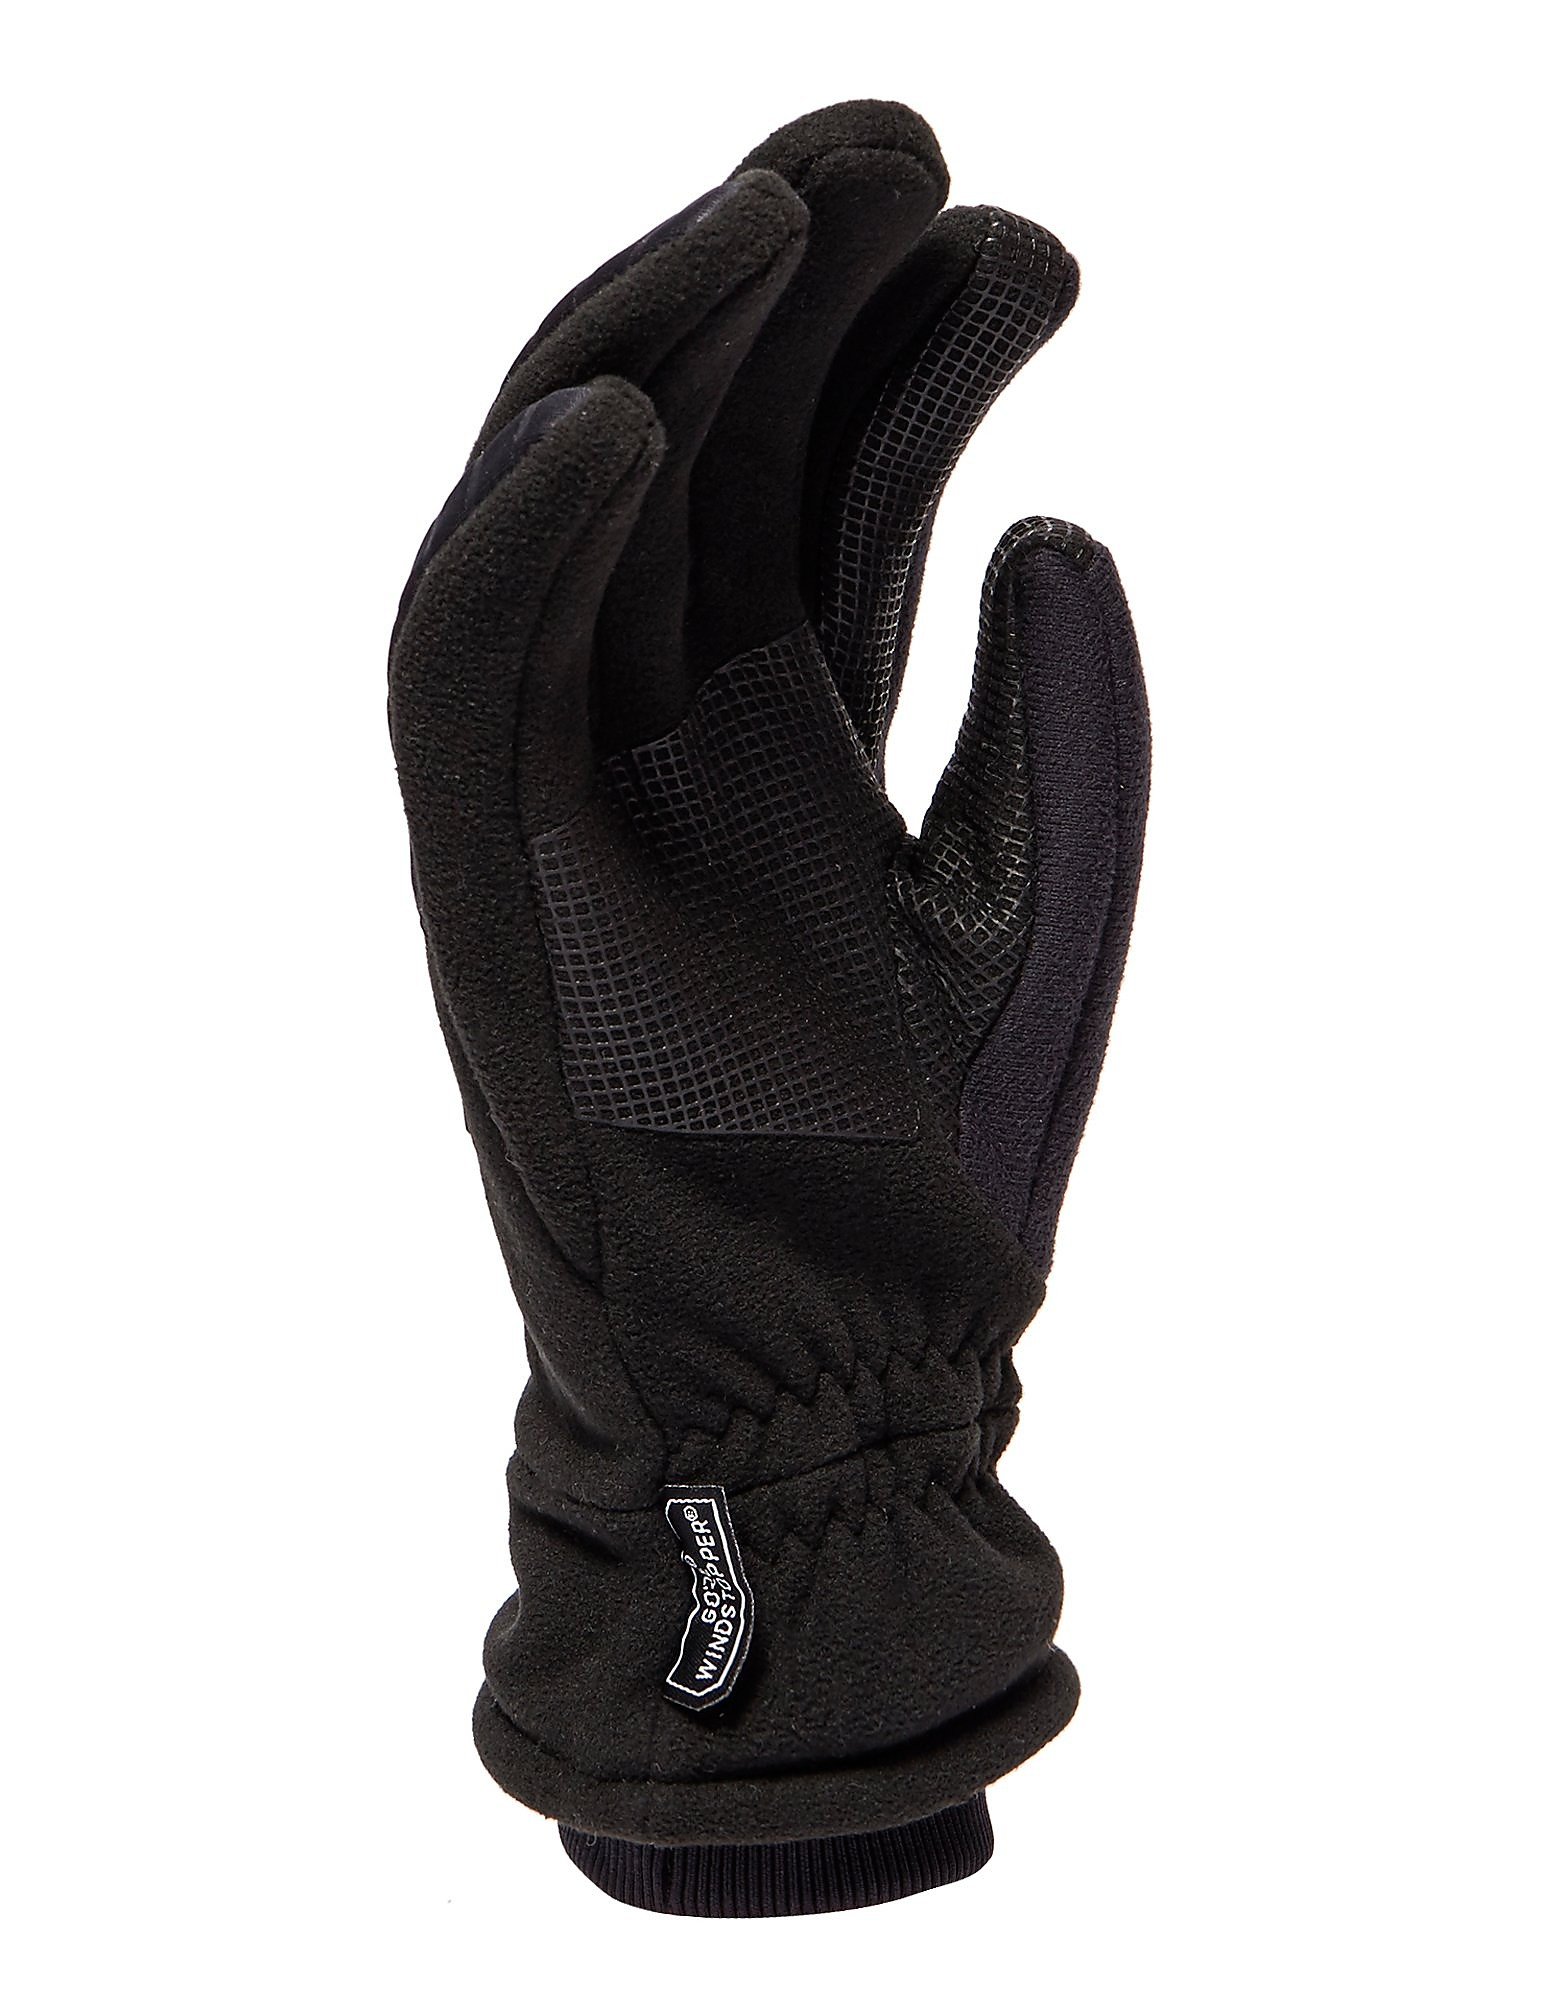 Under Armour Windstopper Gloves